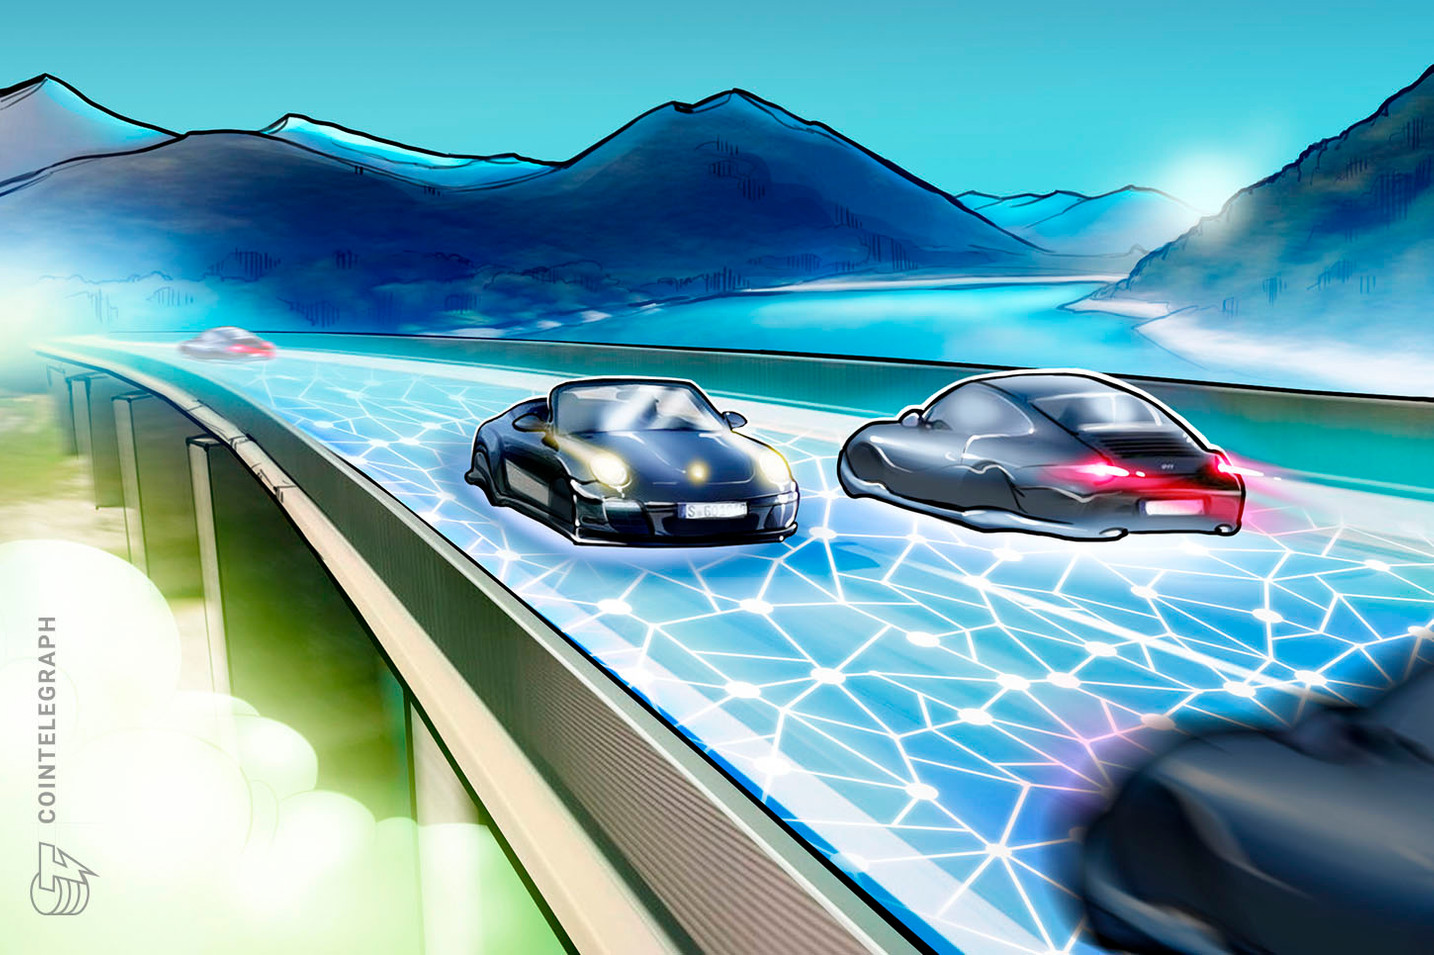 University of Nevada, Reno Develops Driverless Vehicle Blockchain Tech With IoT Firm